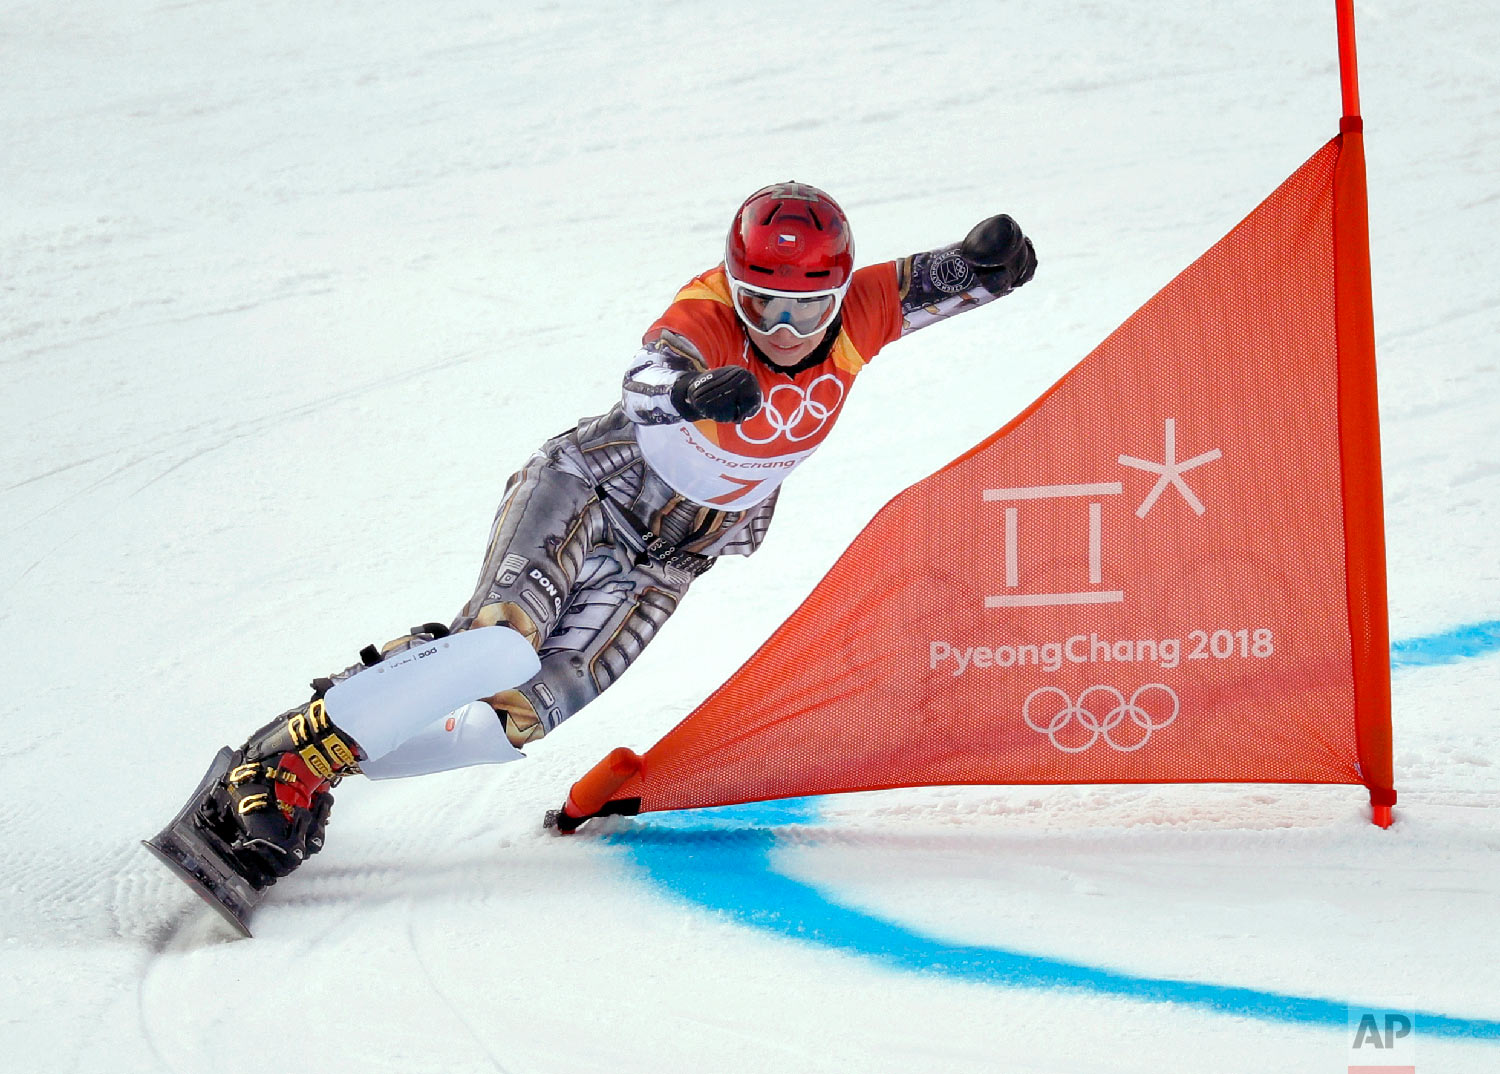 Ester Ledecka, of the Czech Republic, runs the course during the women's parallel giant slalom qualification run at Phoenix Snow Park at the 2018 Winter Olympics in Pyeongchang, South Korea, Saturday, Feb. 24, 2018. (AP Photo/Kin Cheung)